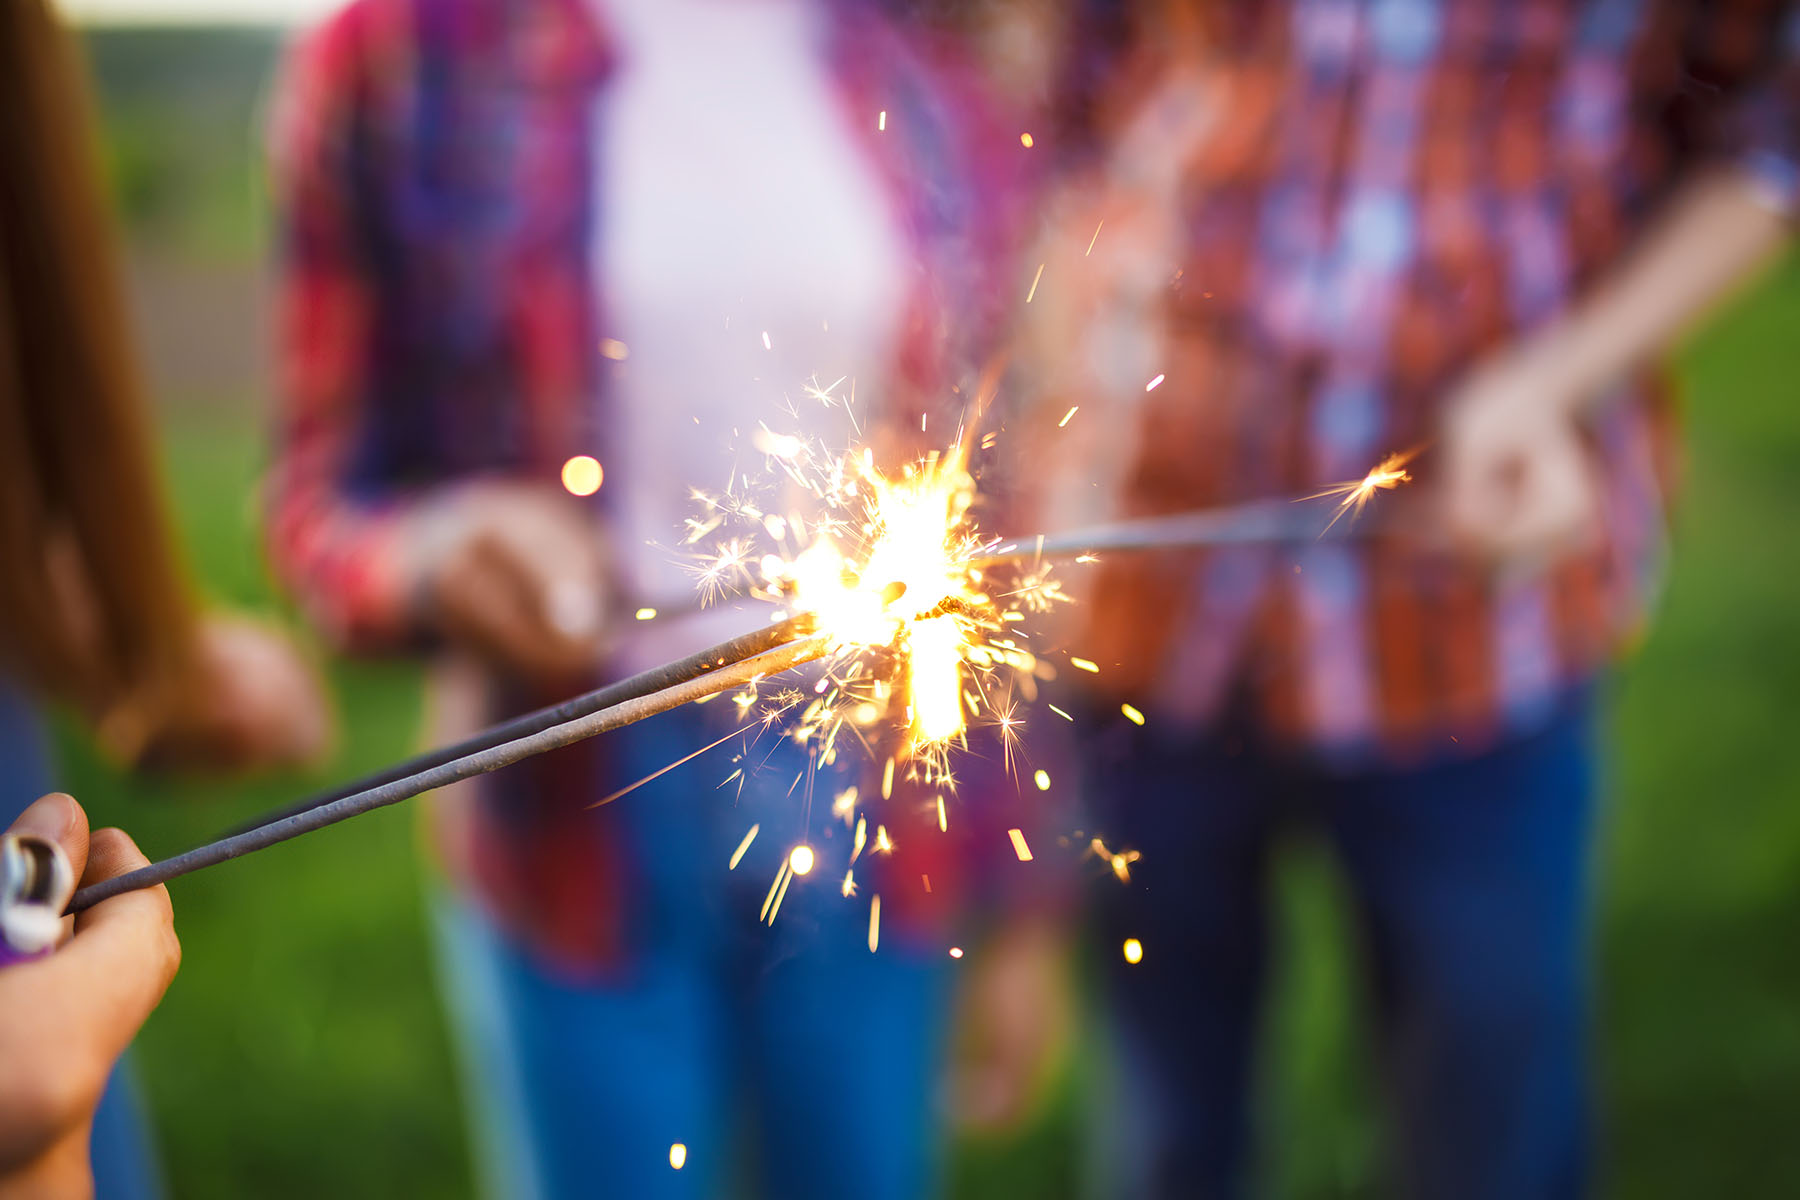 Have fun, but be safe with fireworks